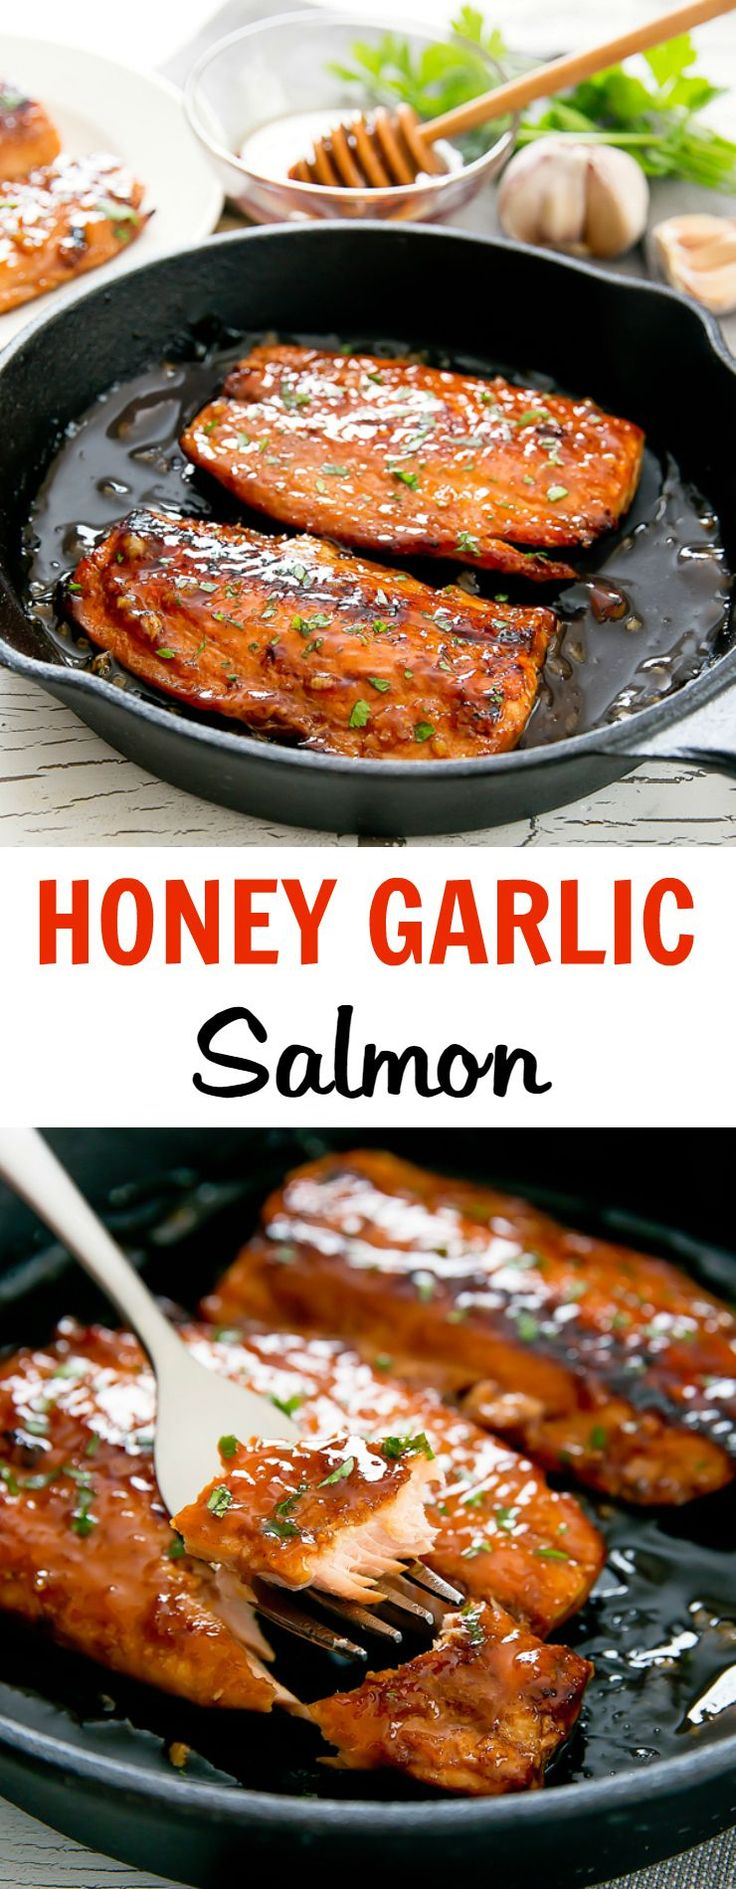 Honey Garlic Salmon. An easy and delicious meal ready in 30 minutes. #DeliciousSeafoodMeals